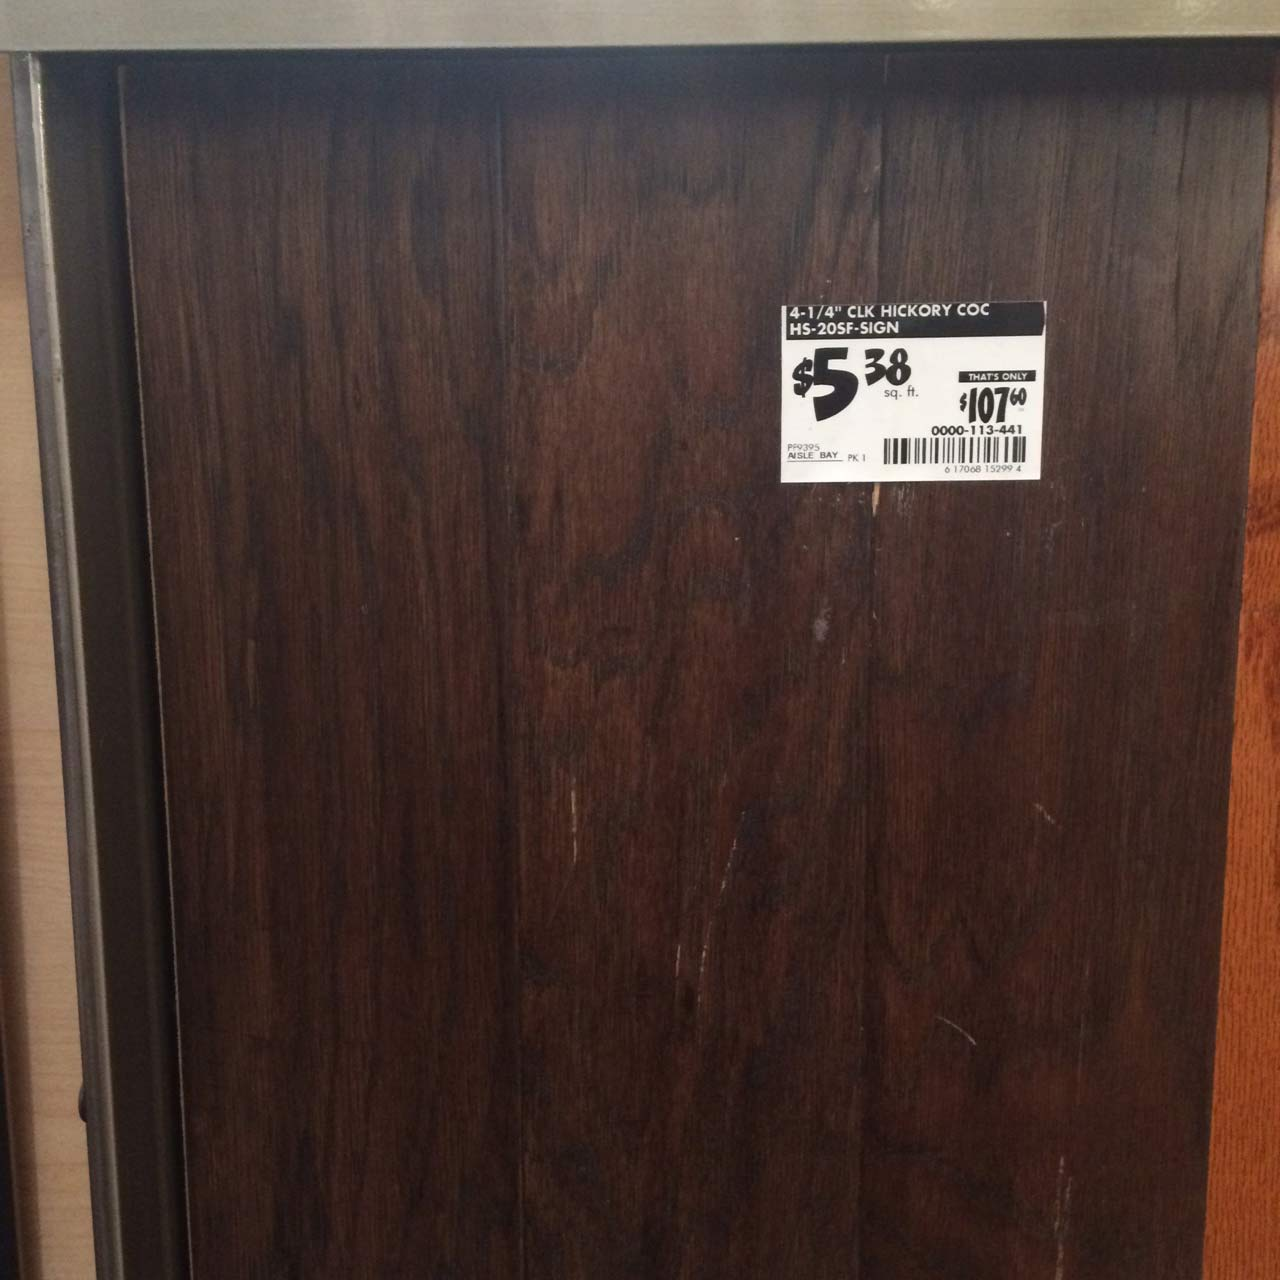 """4-1/4"""" Hickory - $5.38 / square foot or approx. $538 for a 10x10 room. Hickory is one of the hardest wood species available, making it a strong and durable finish option."""